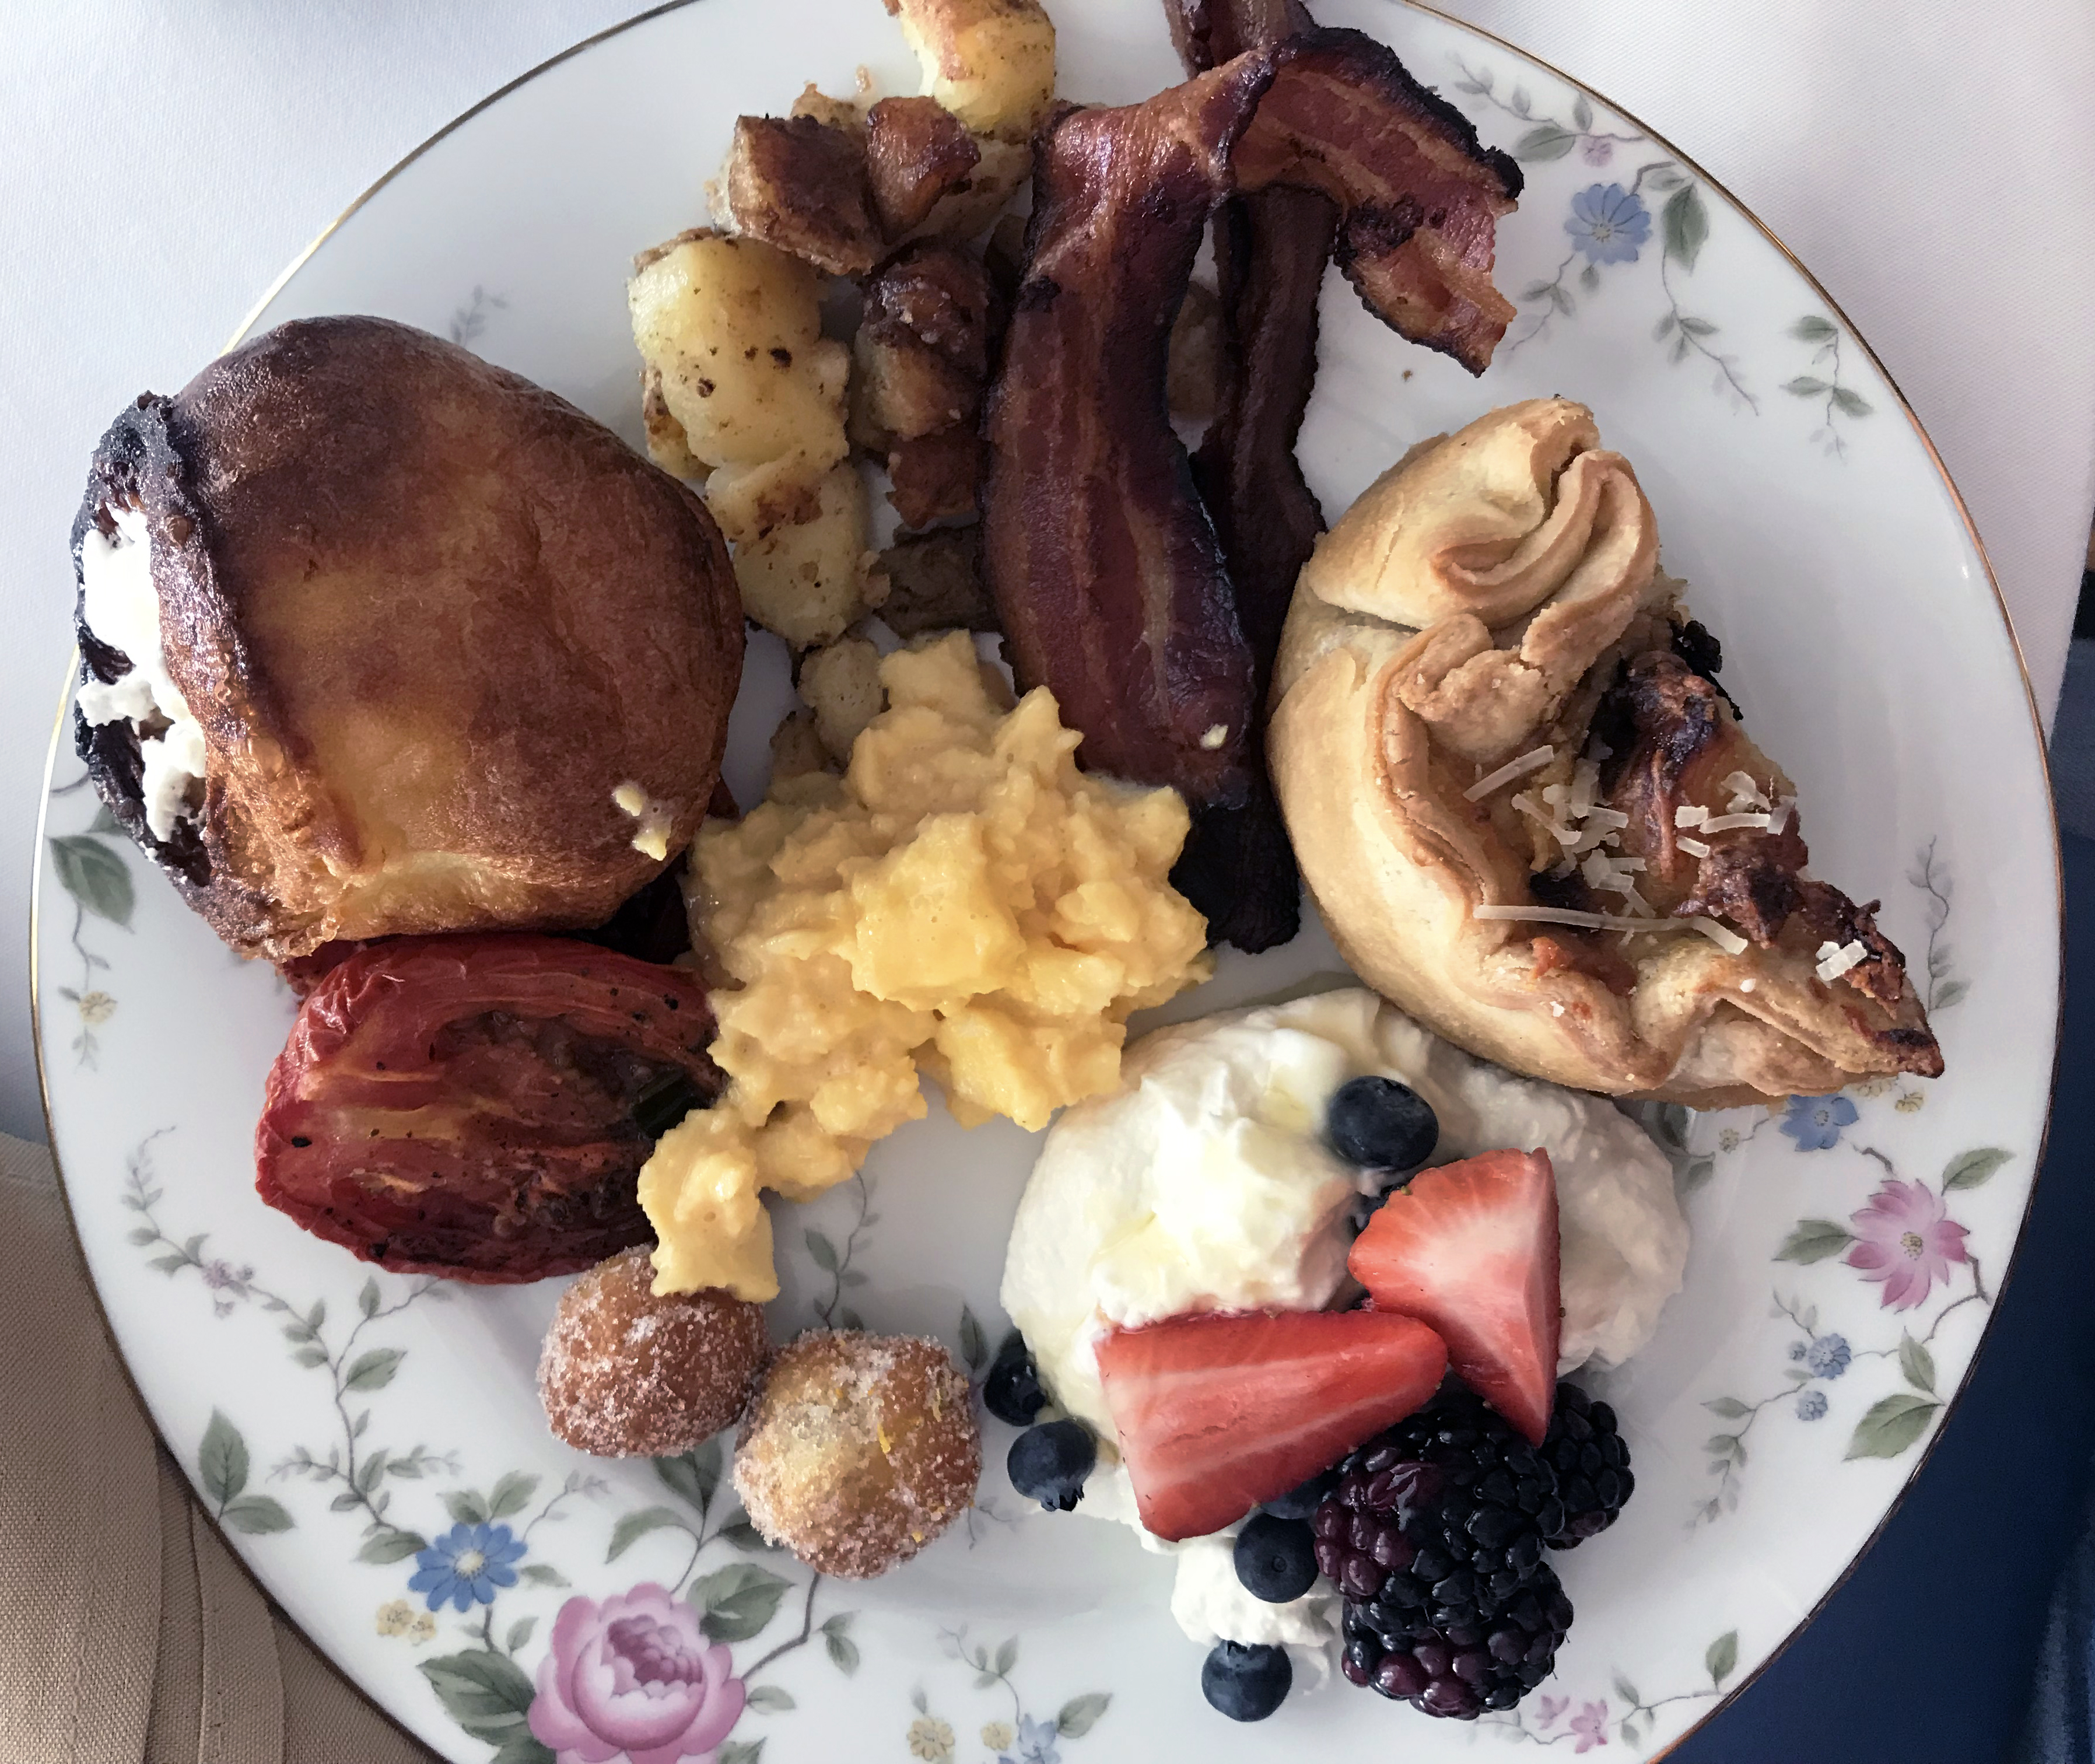 I was lucky enough to be treated, courtesy of Cornman Farm's, to its 'wedding brunch buffet,' which would typically be served when an event is hosted. There were roasted tomatoes, traditional Yorkshire pudding, savory homity pies, and the traditional fresh fruit and yogurt, bacon, fried potatoes, and eggs.